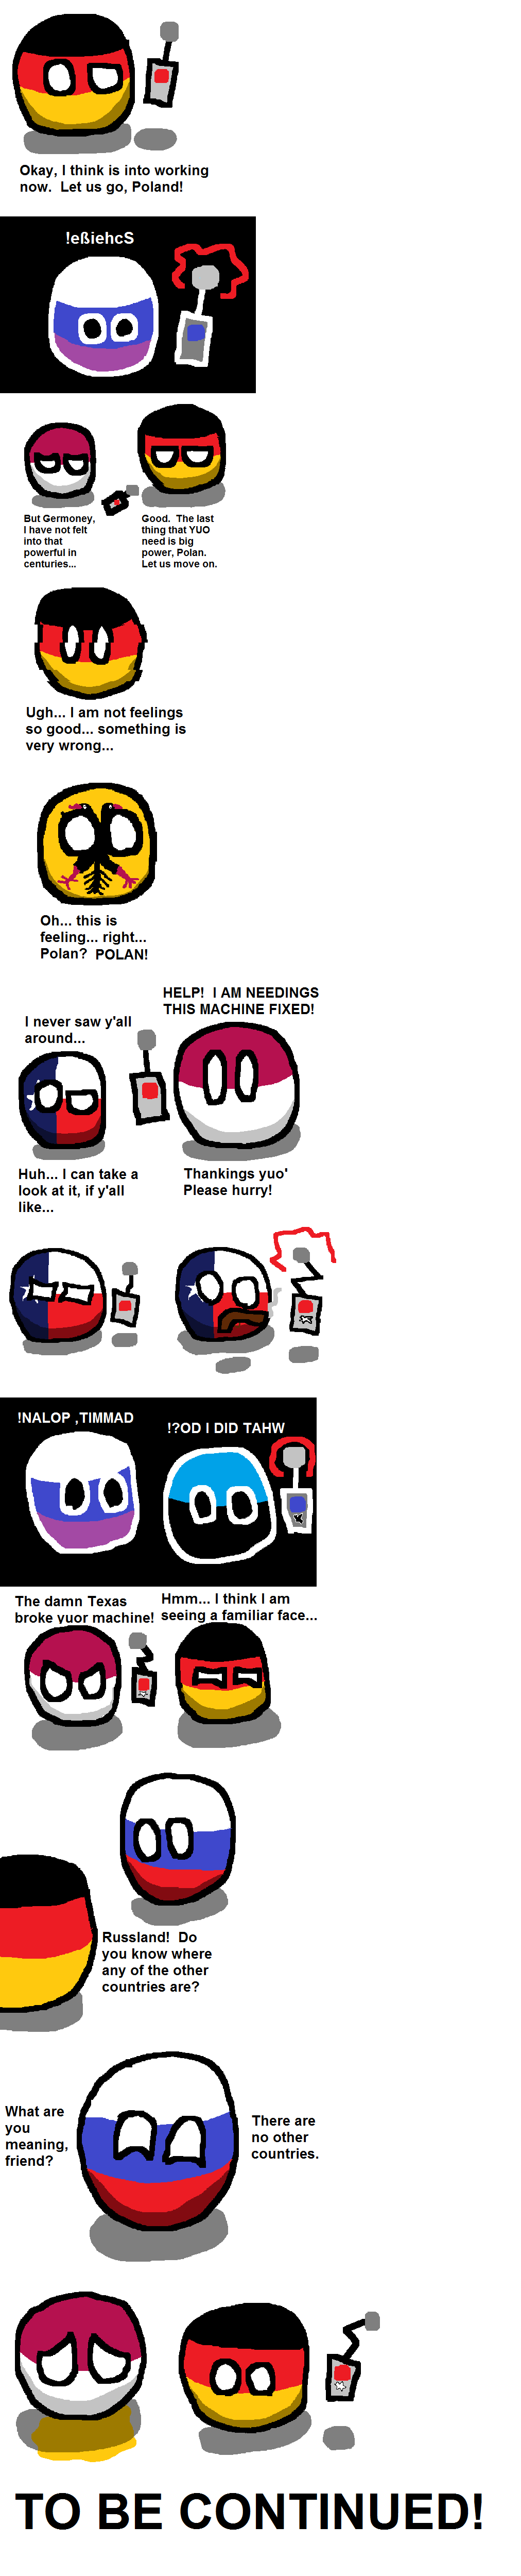 Polan and Germoney's Adventures in Time Part 2